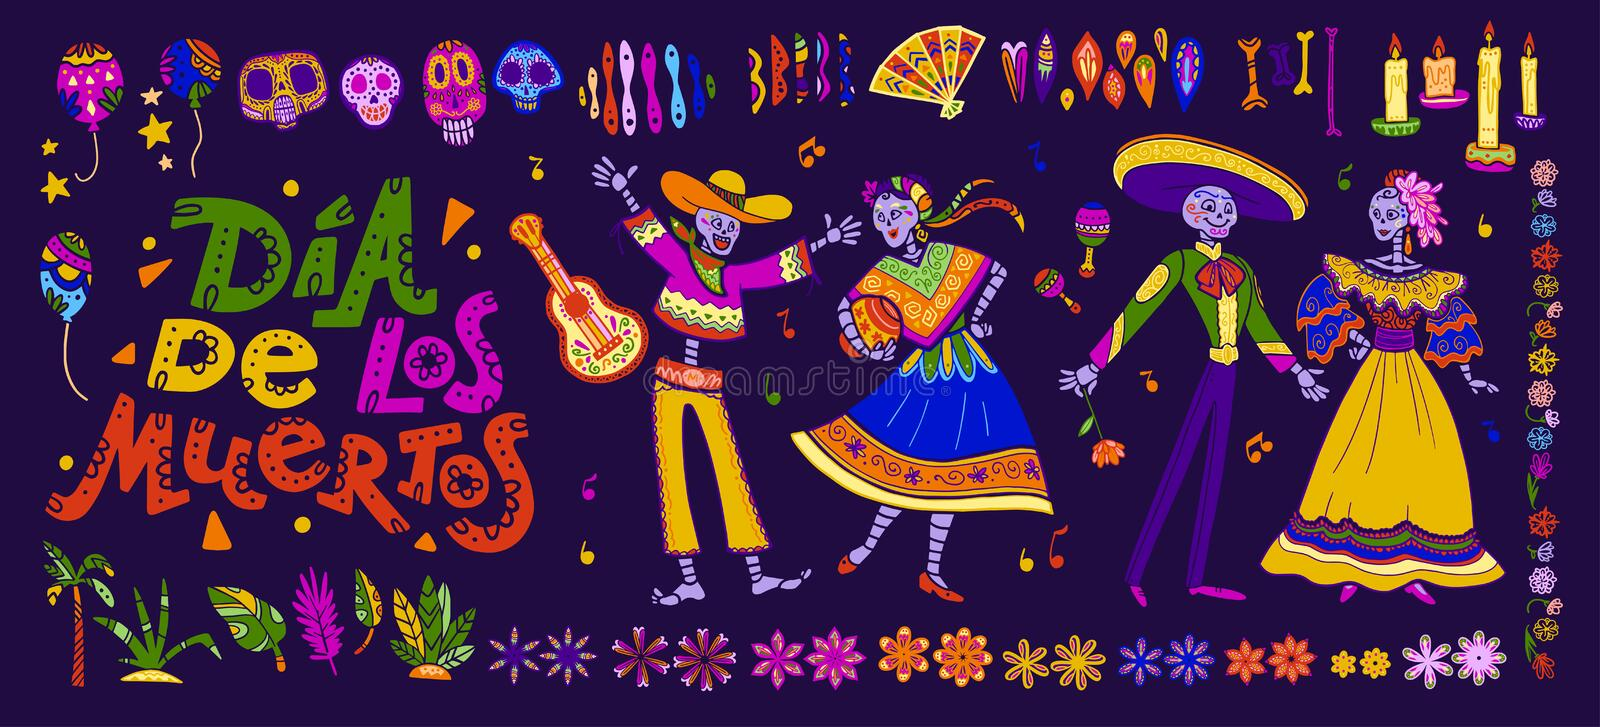 Vector dia de los muertos set of mexico traditional elements, symbols & skeleton characters in hand drawn style isolated on dark b royalty free illustration